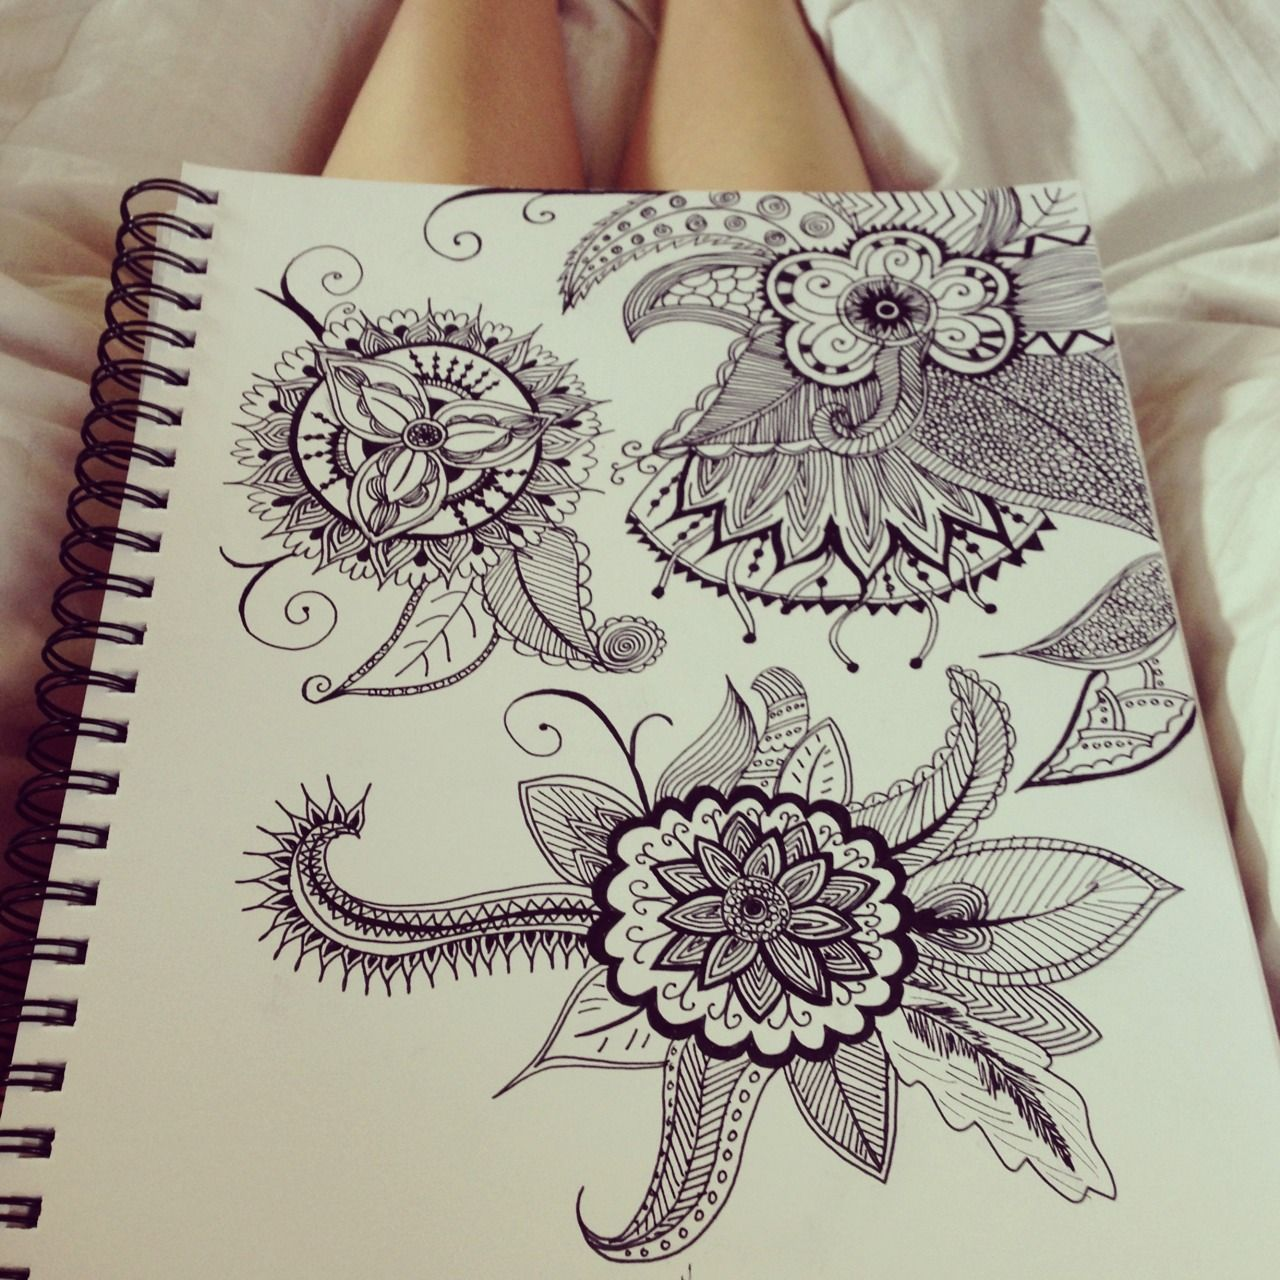 Pin by candace ingle on fixing my foot tattoo pinterest sketches